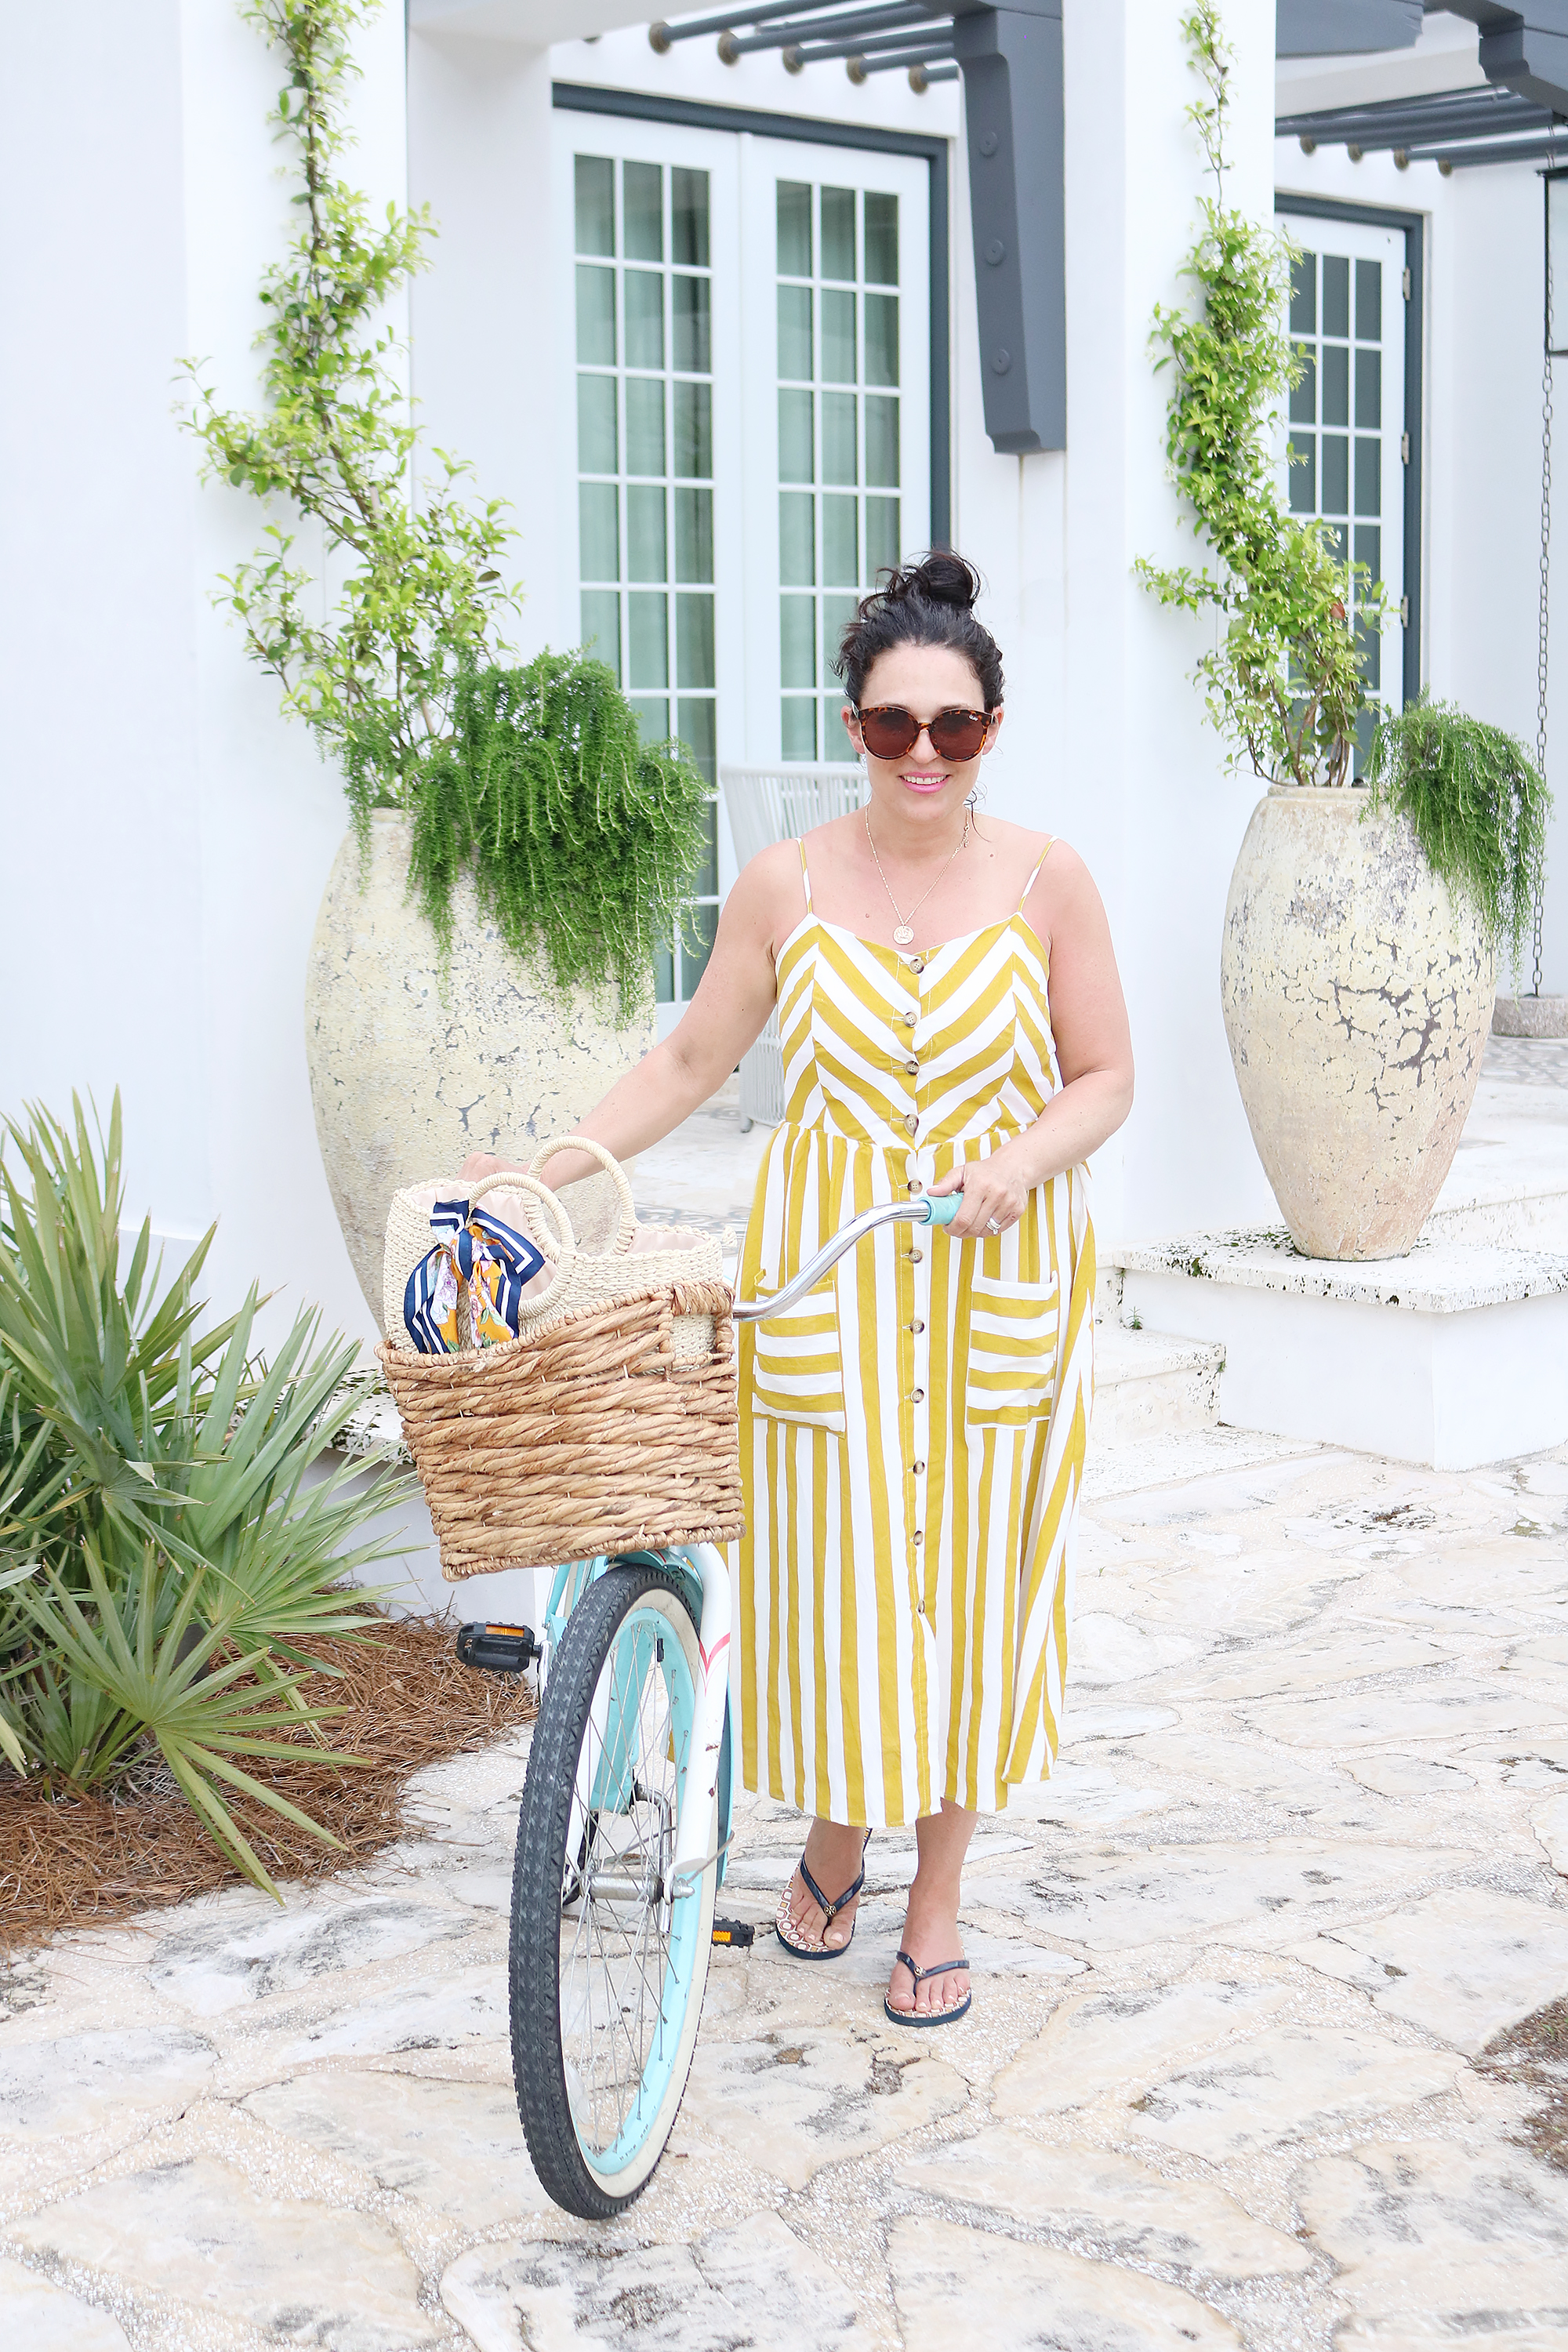 Biking around Alys Beach in my yellow striped button up dress, what beach vacation maxi dress to pack when at the beach, beach bike with basket || Darling Darleen